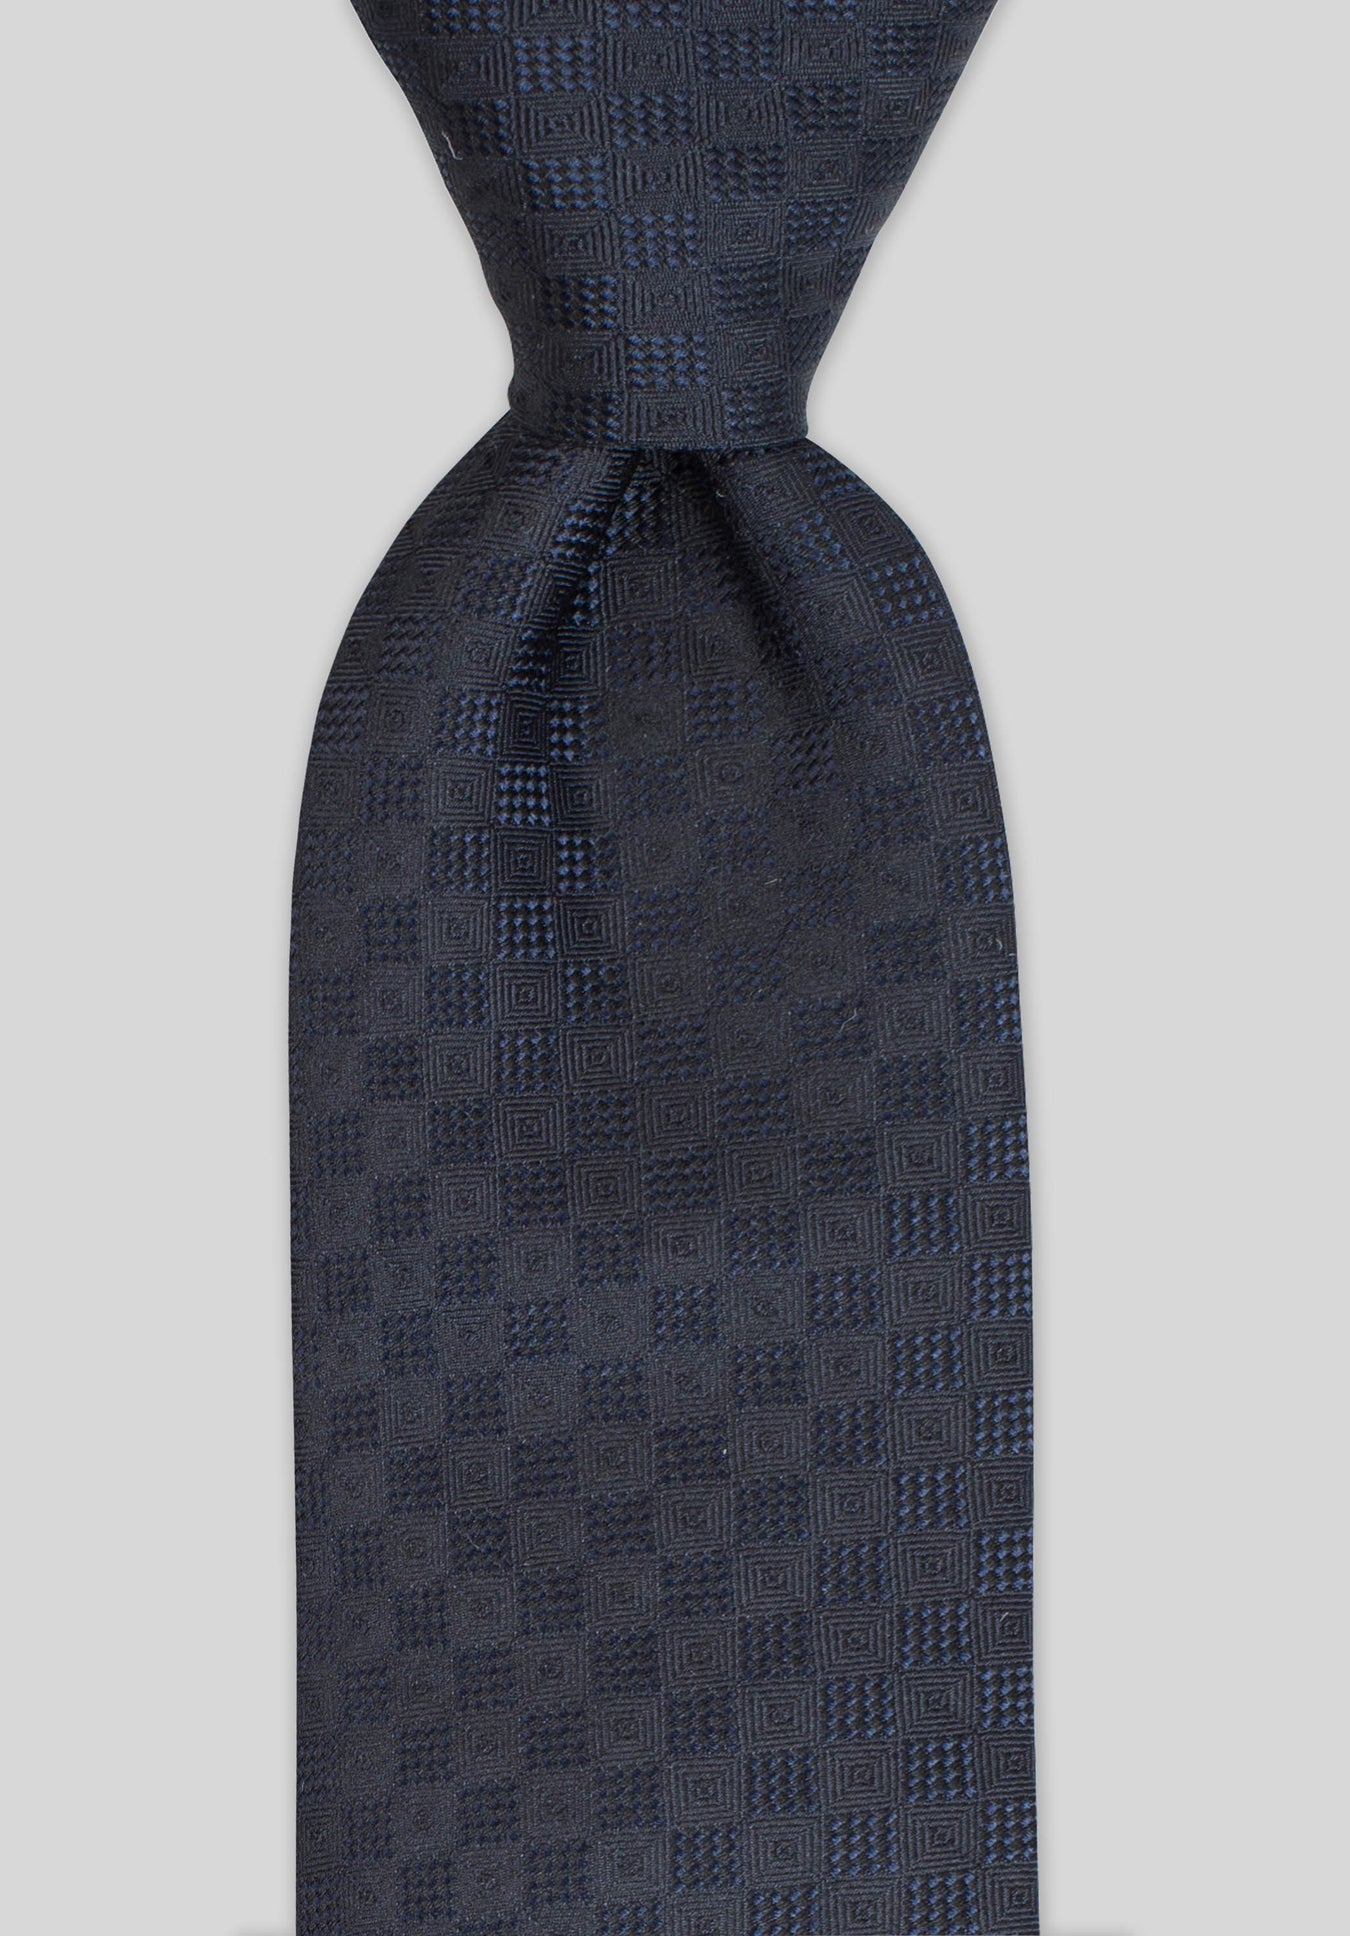 DIAMONDS 7.5CM TIE - Navy